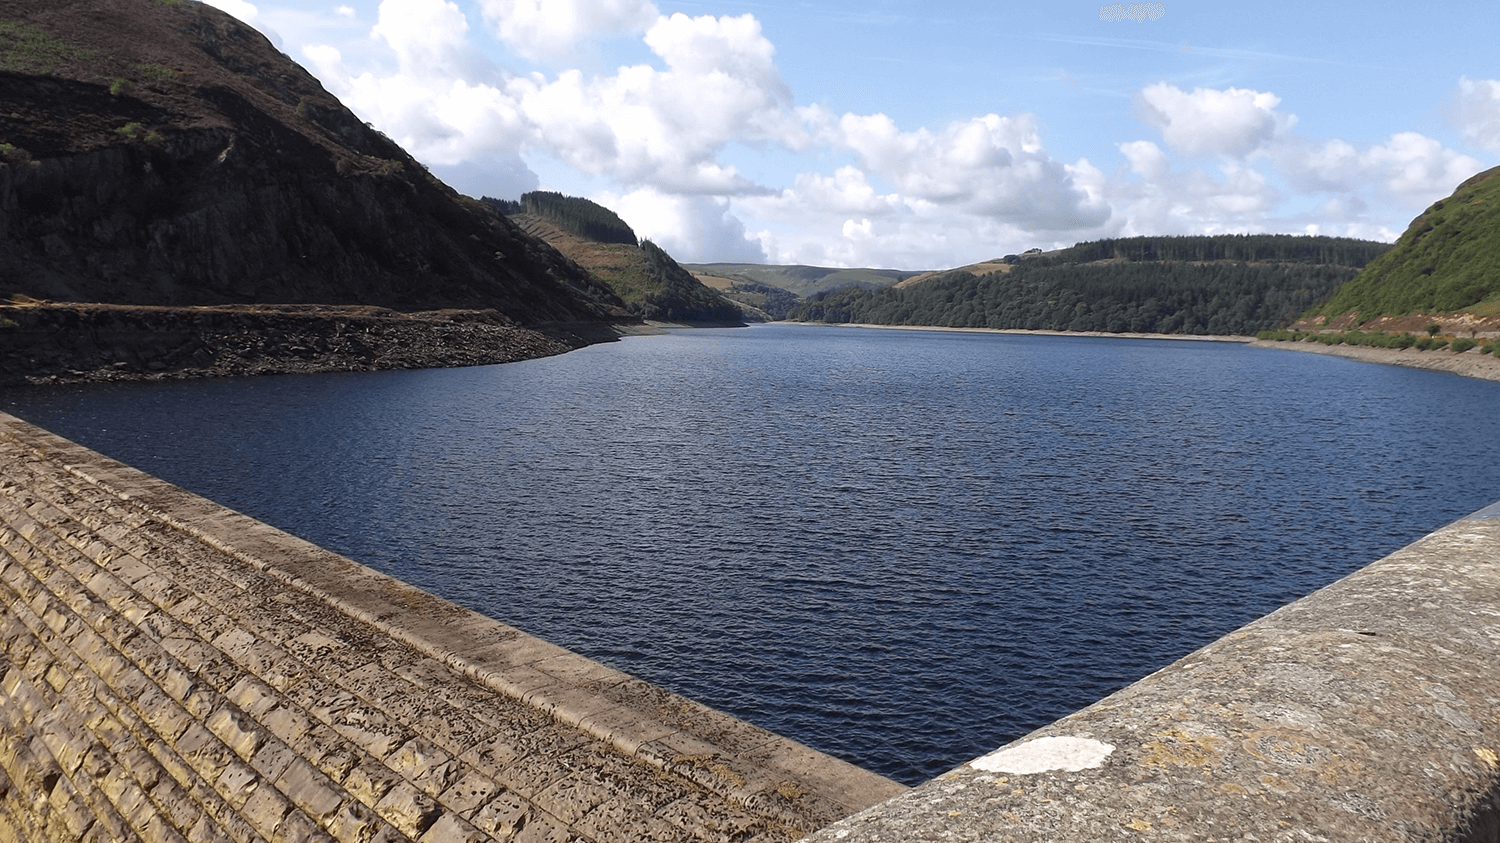 Caban Coch Dam near Brecon